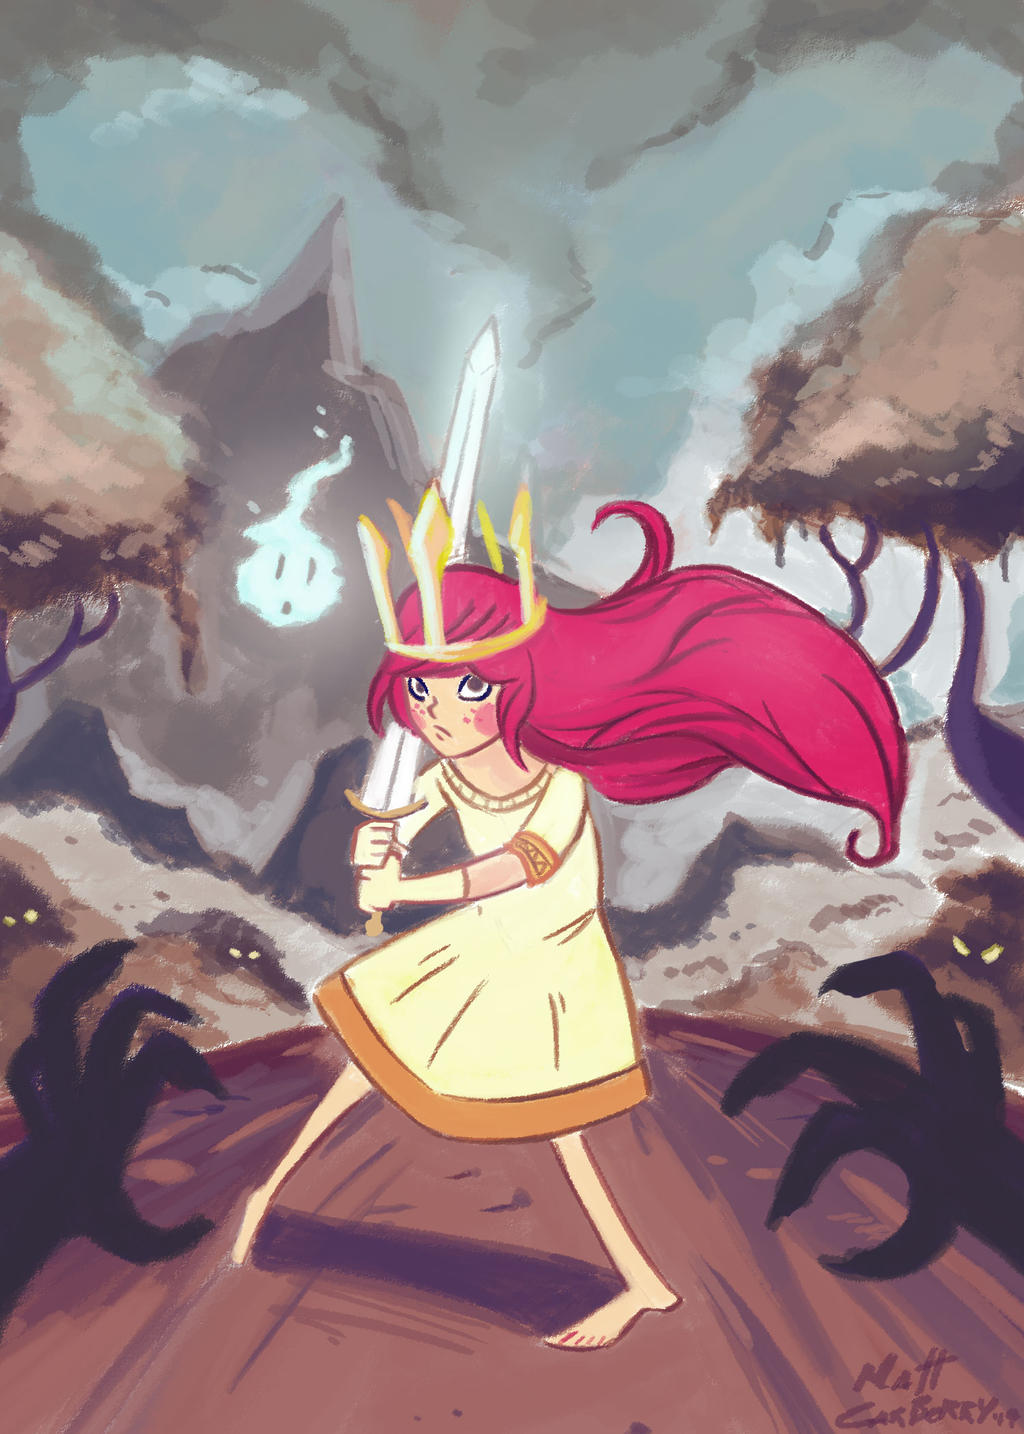 Child of Light by MattCarberry on DeviantArt